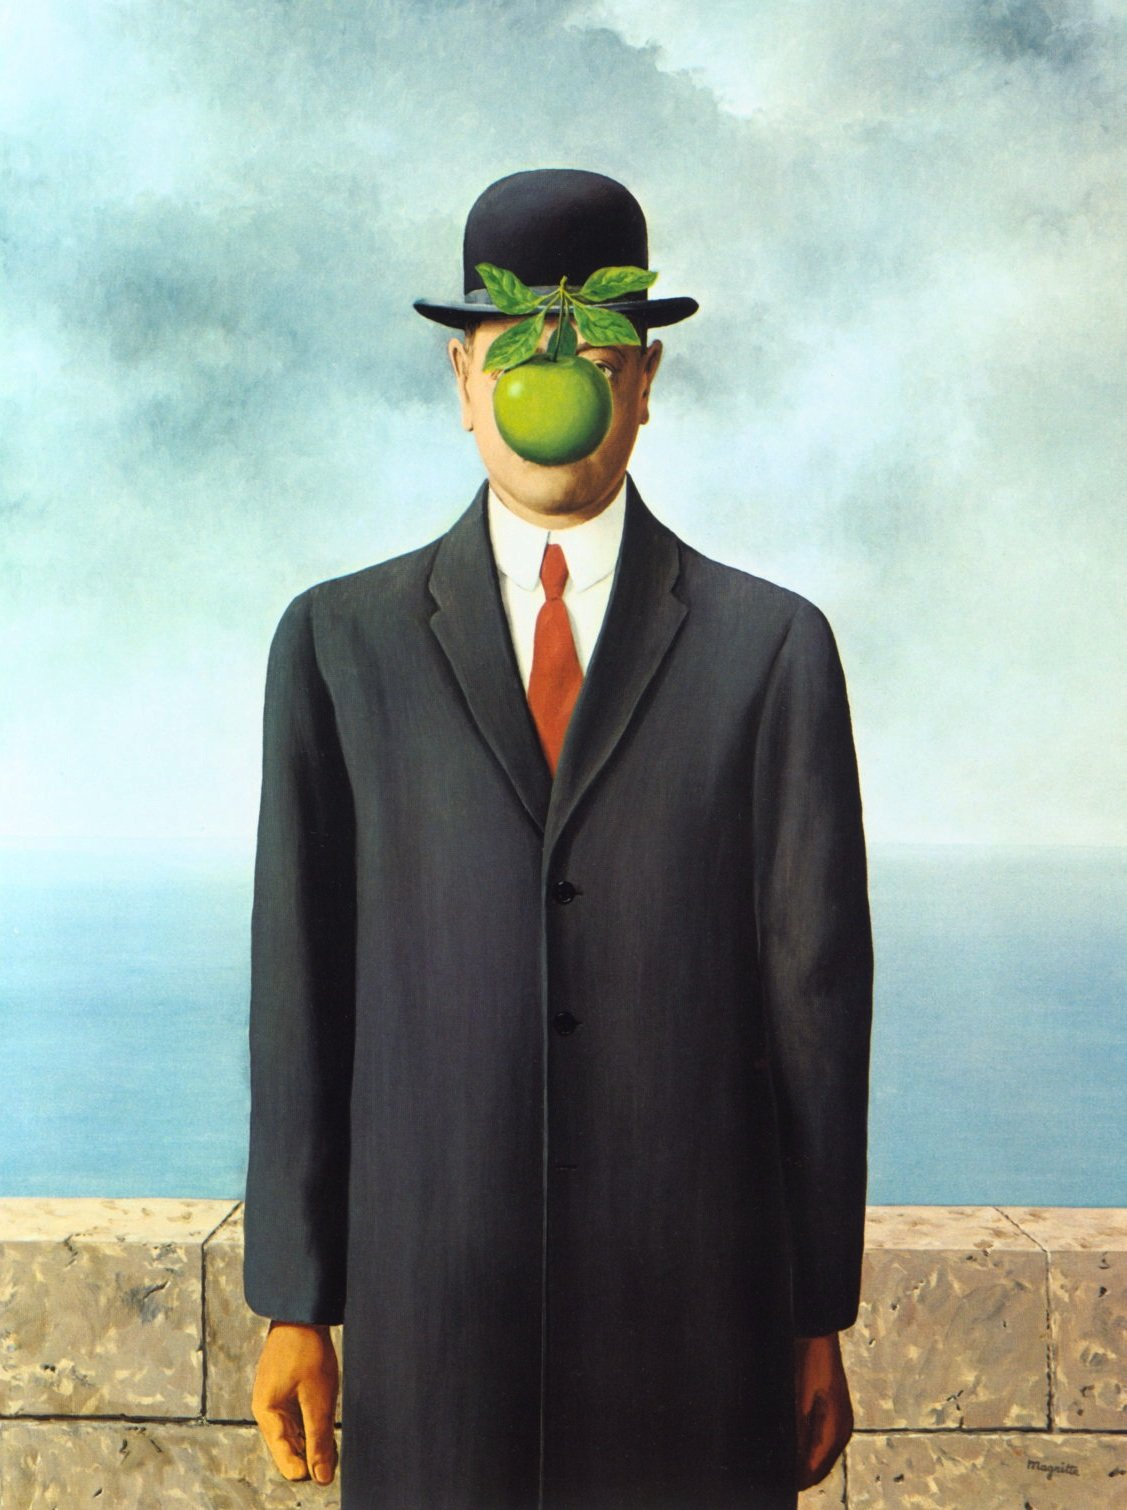 14_René_Magritte_The_Son_of_Man